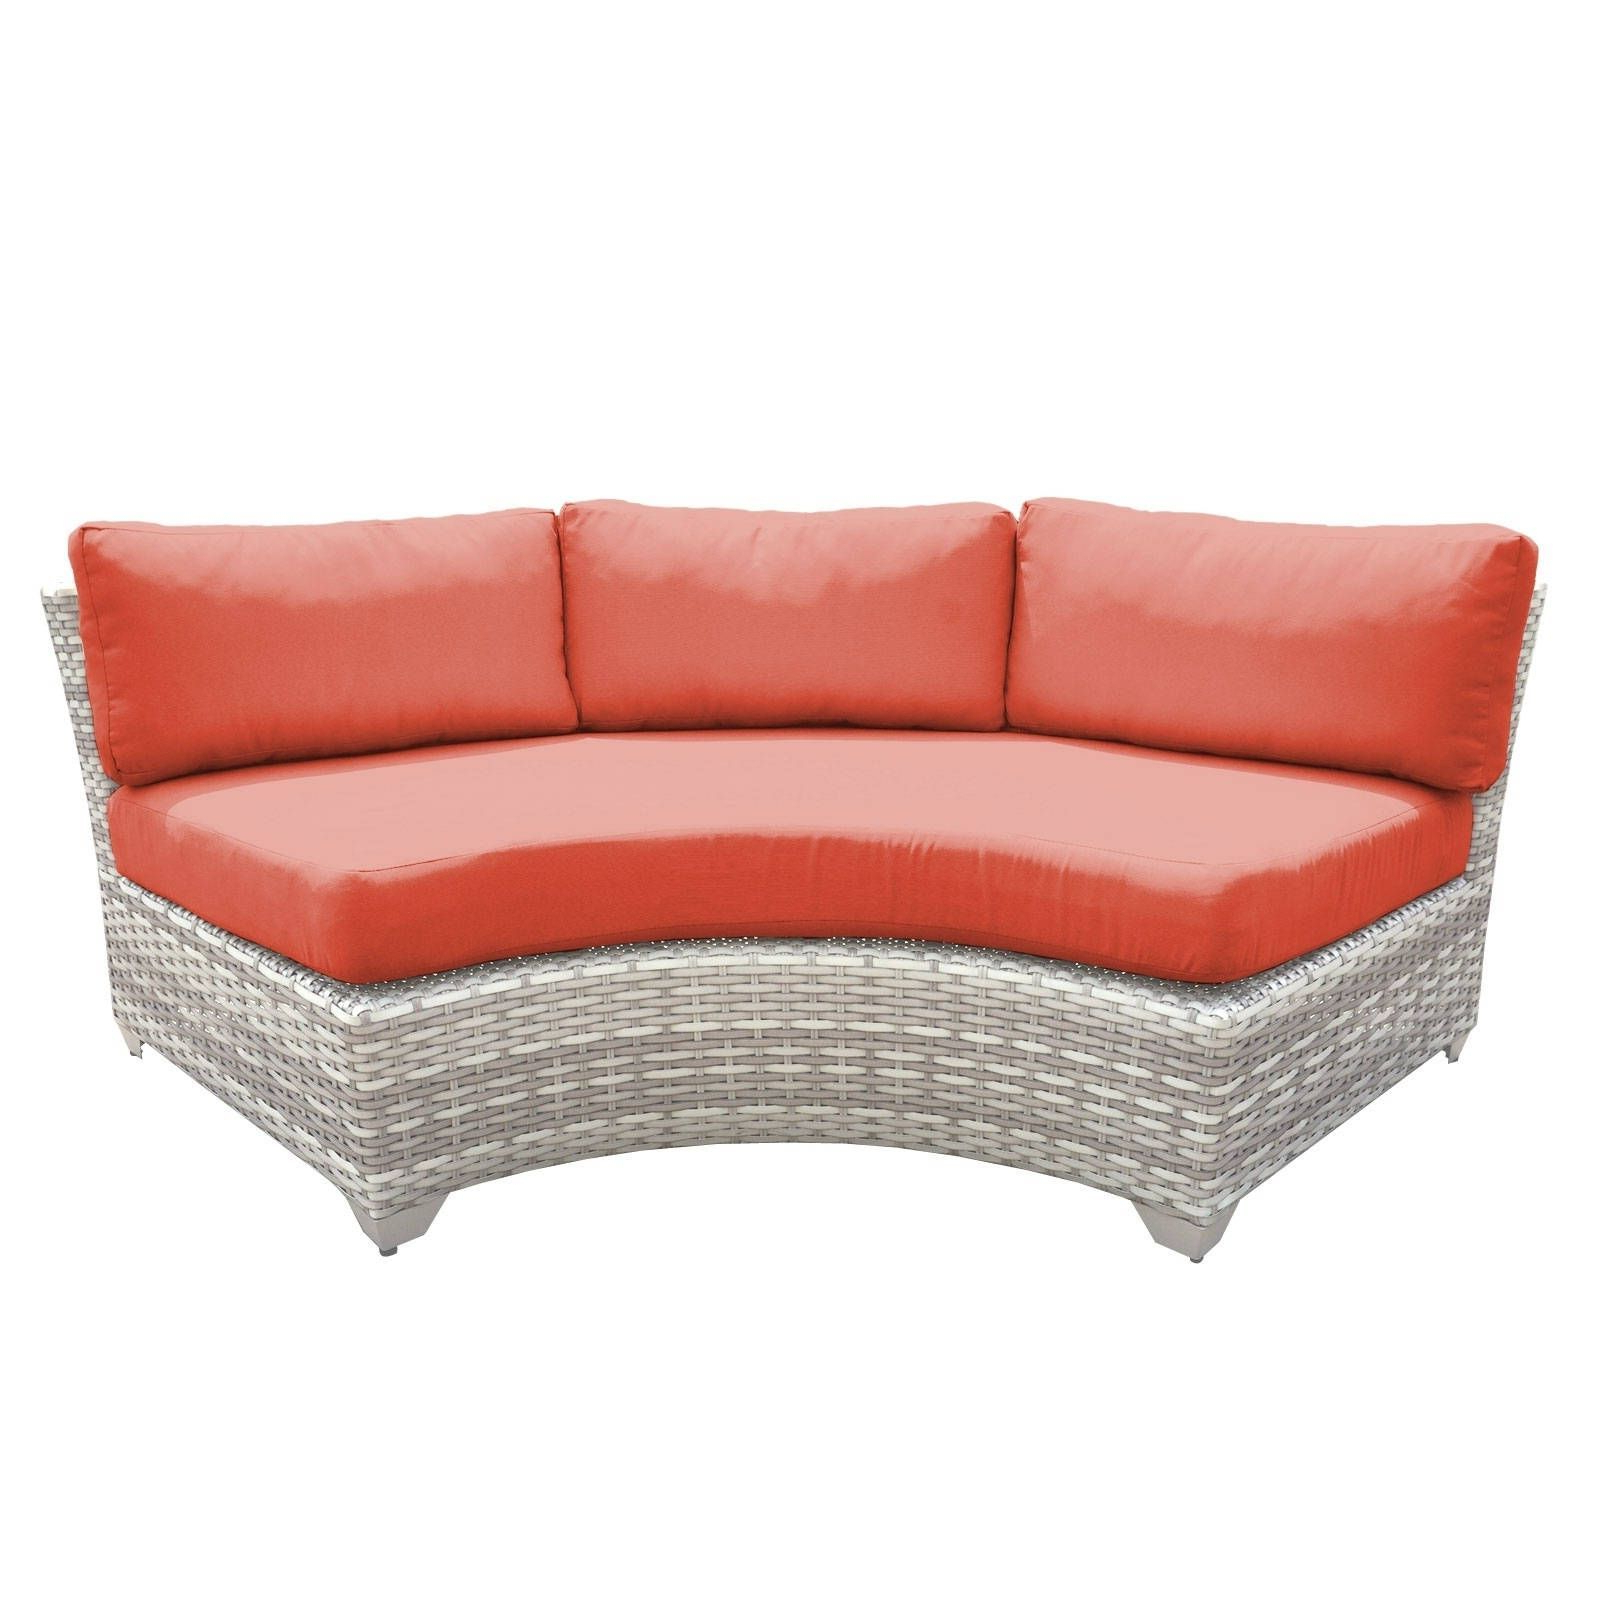 Catamaran Outdoor Patio Curved Wicker Sofa (tangerine), Grey For 2019 Waterbury Curved Armless Sofa With Cushions (View 19 of 20)